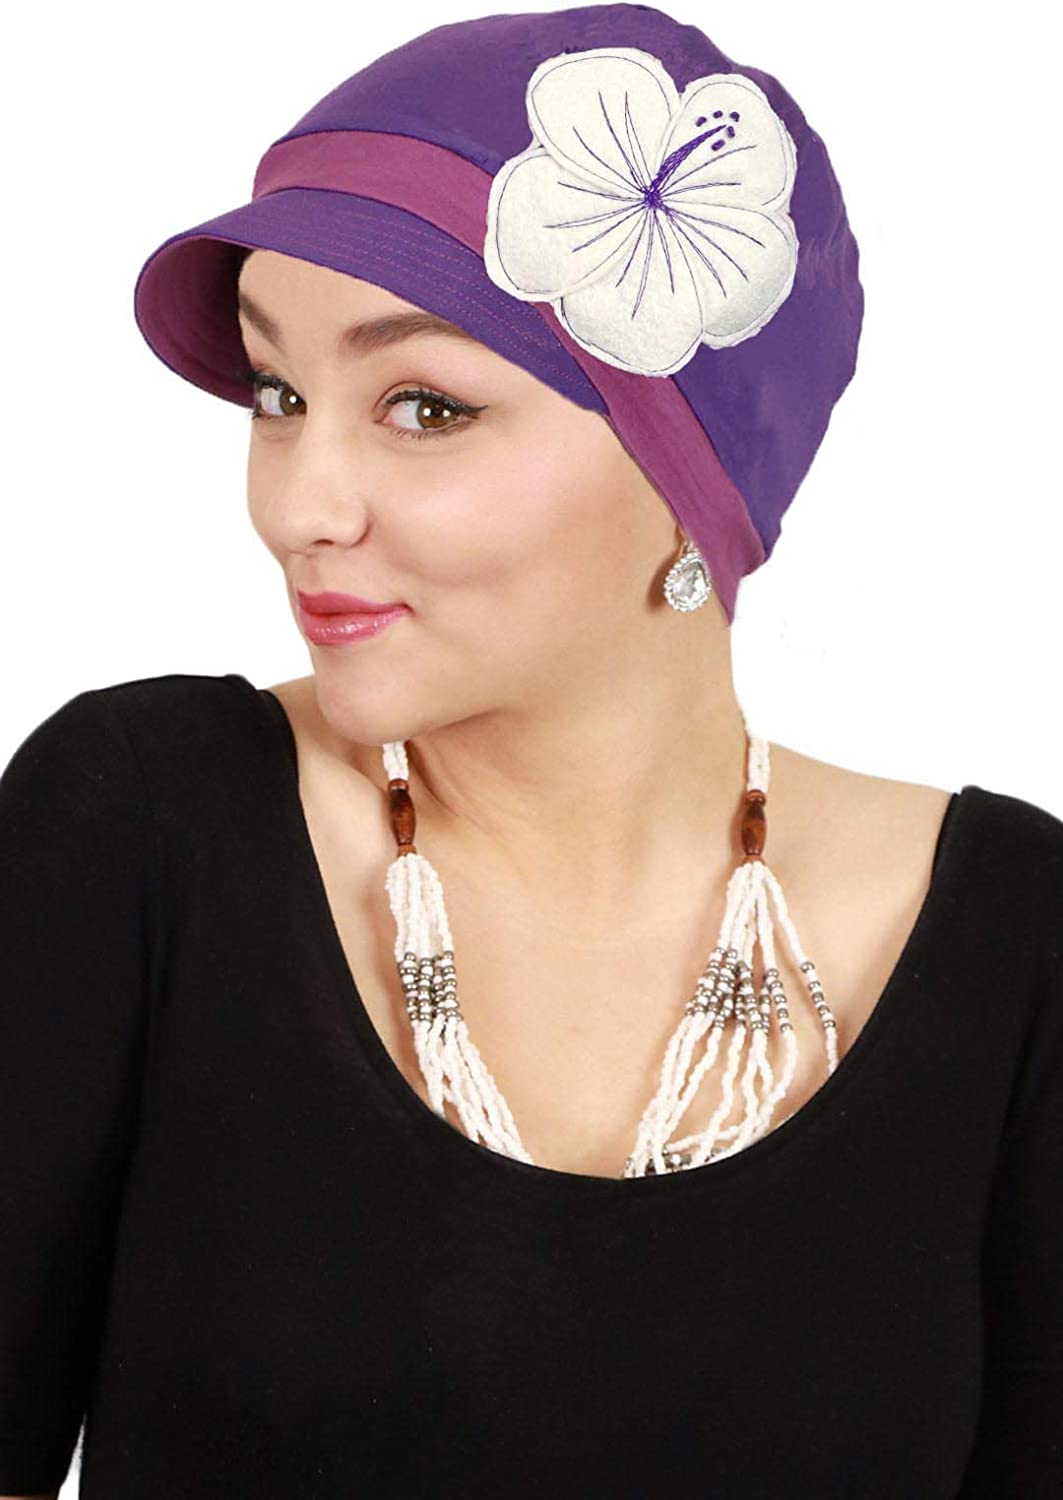 Chemo Hats for Women Cancer Headwear Head Coverings Cute Baseball Caps Soft and Stretchy Cotton